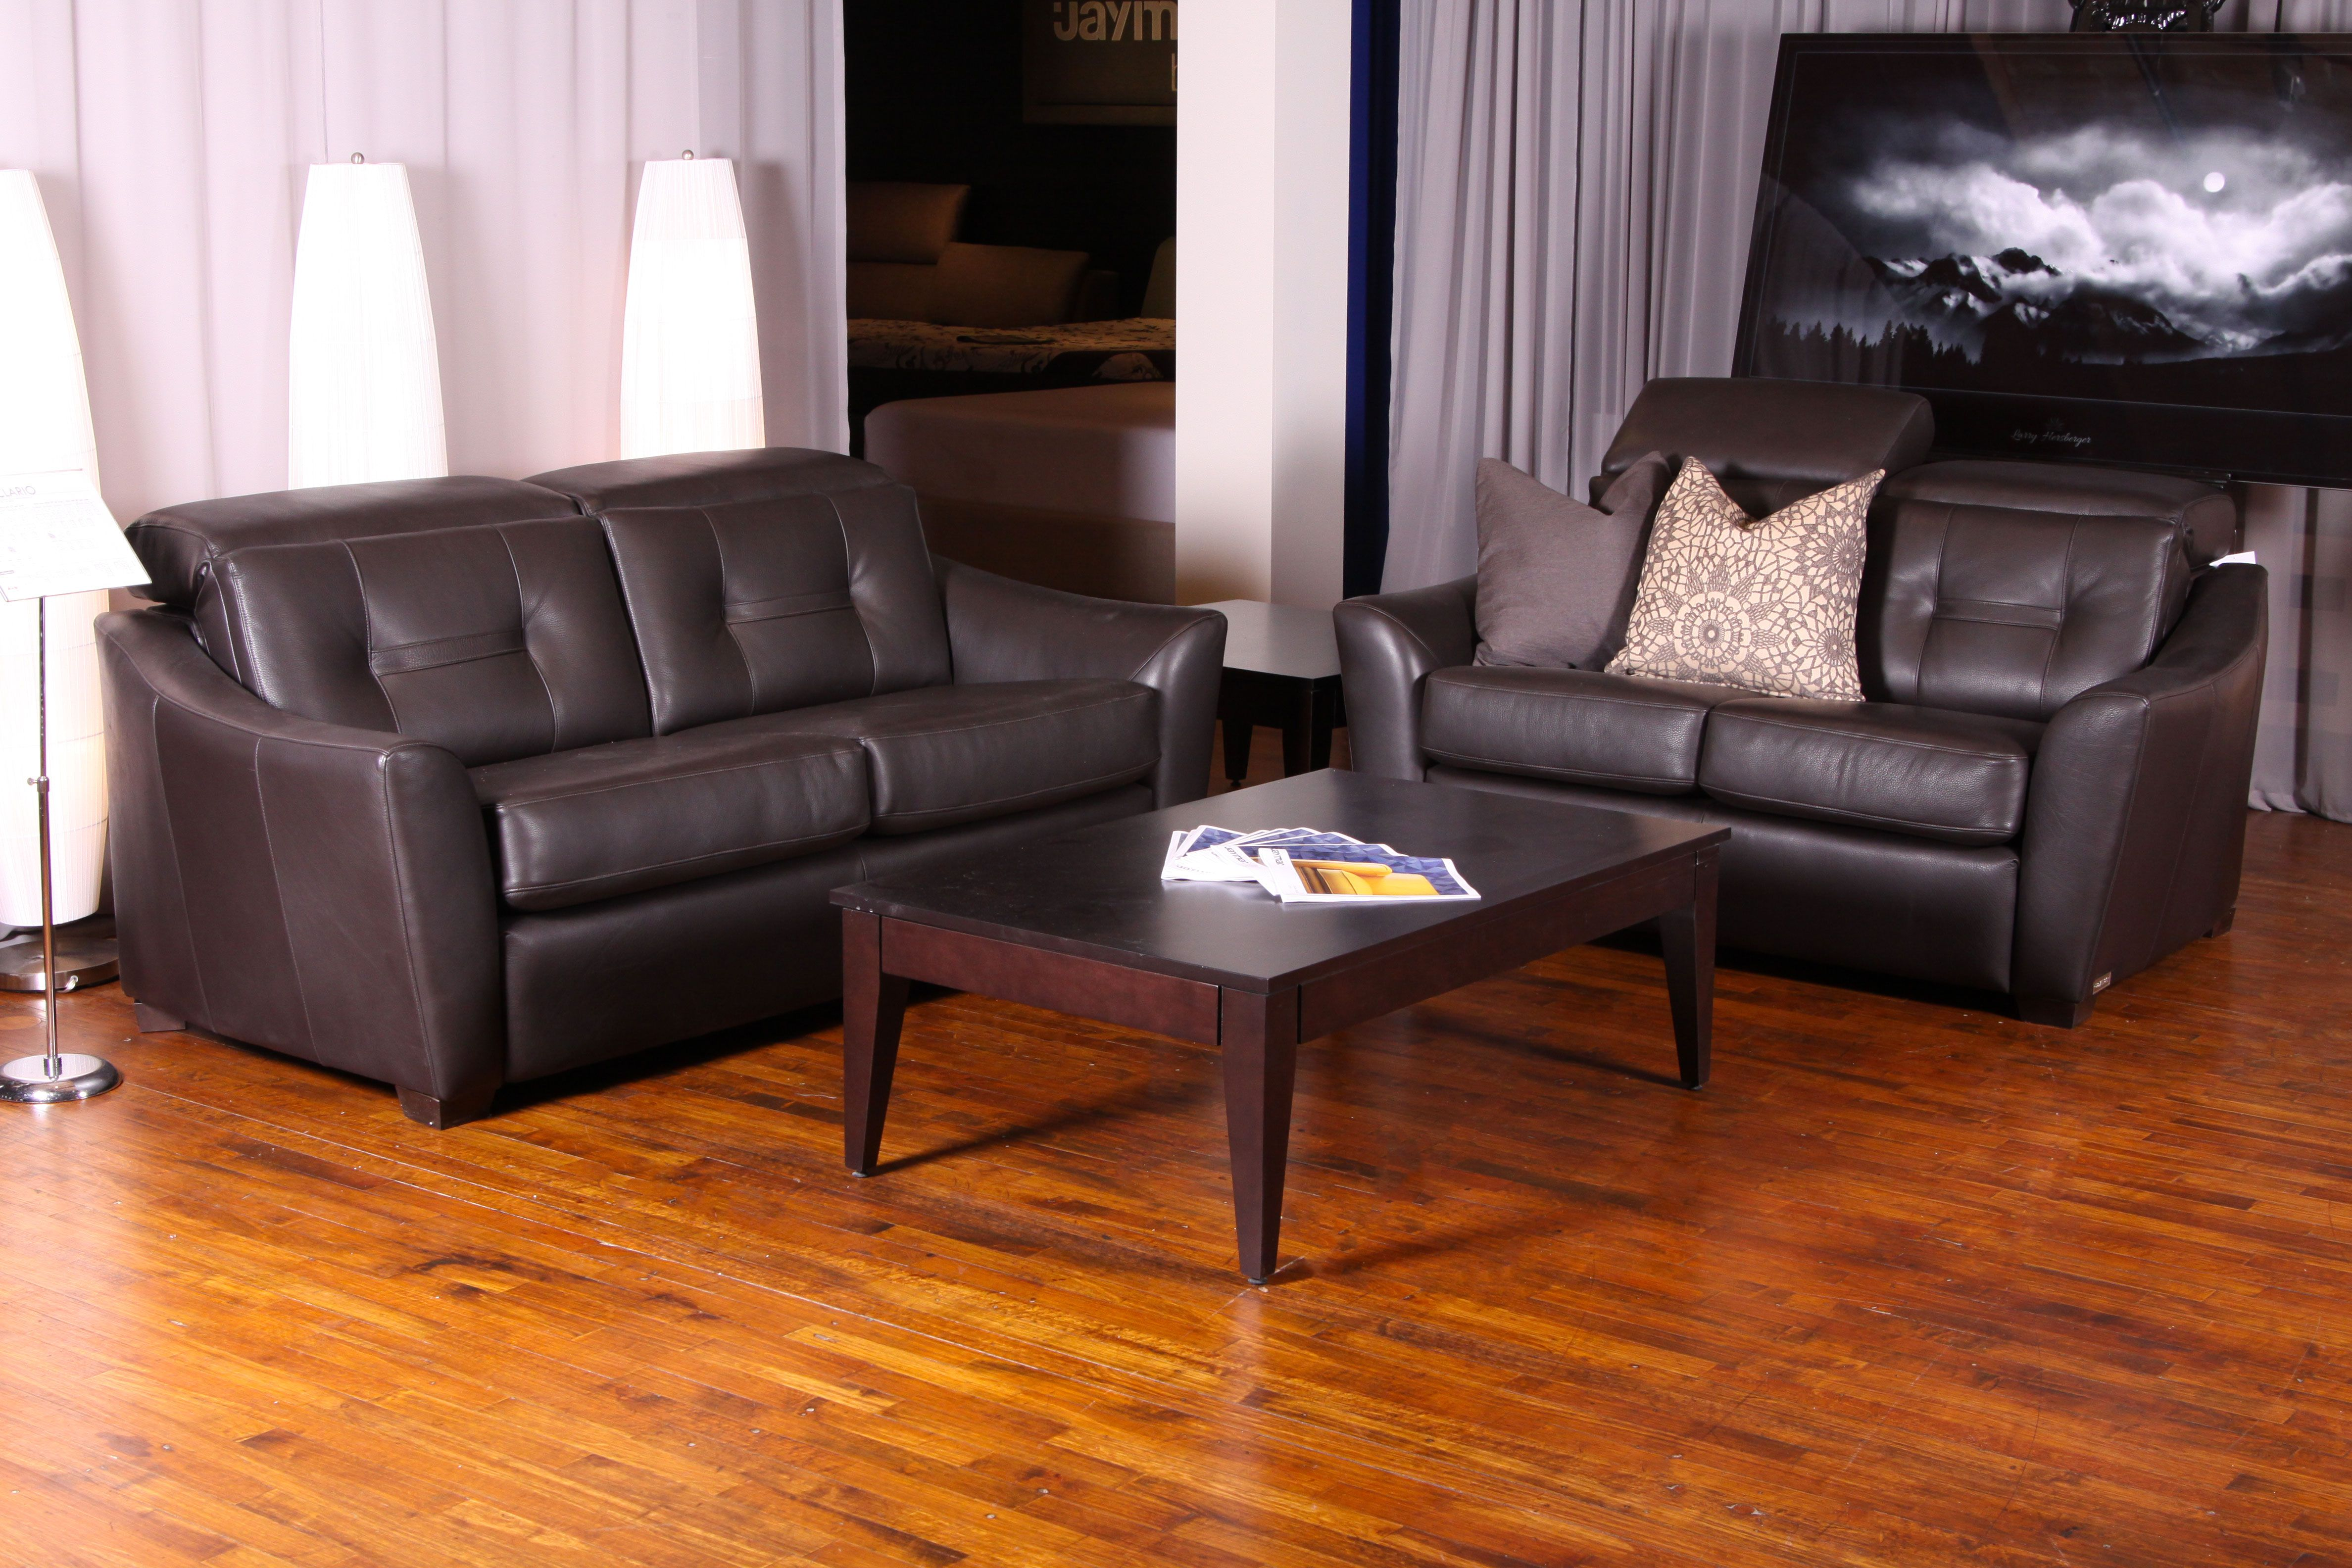 Clario, Leather sofa with Retractable headrest and